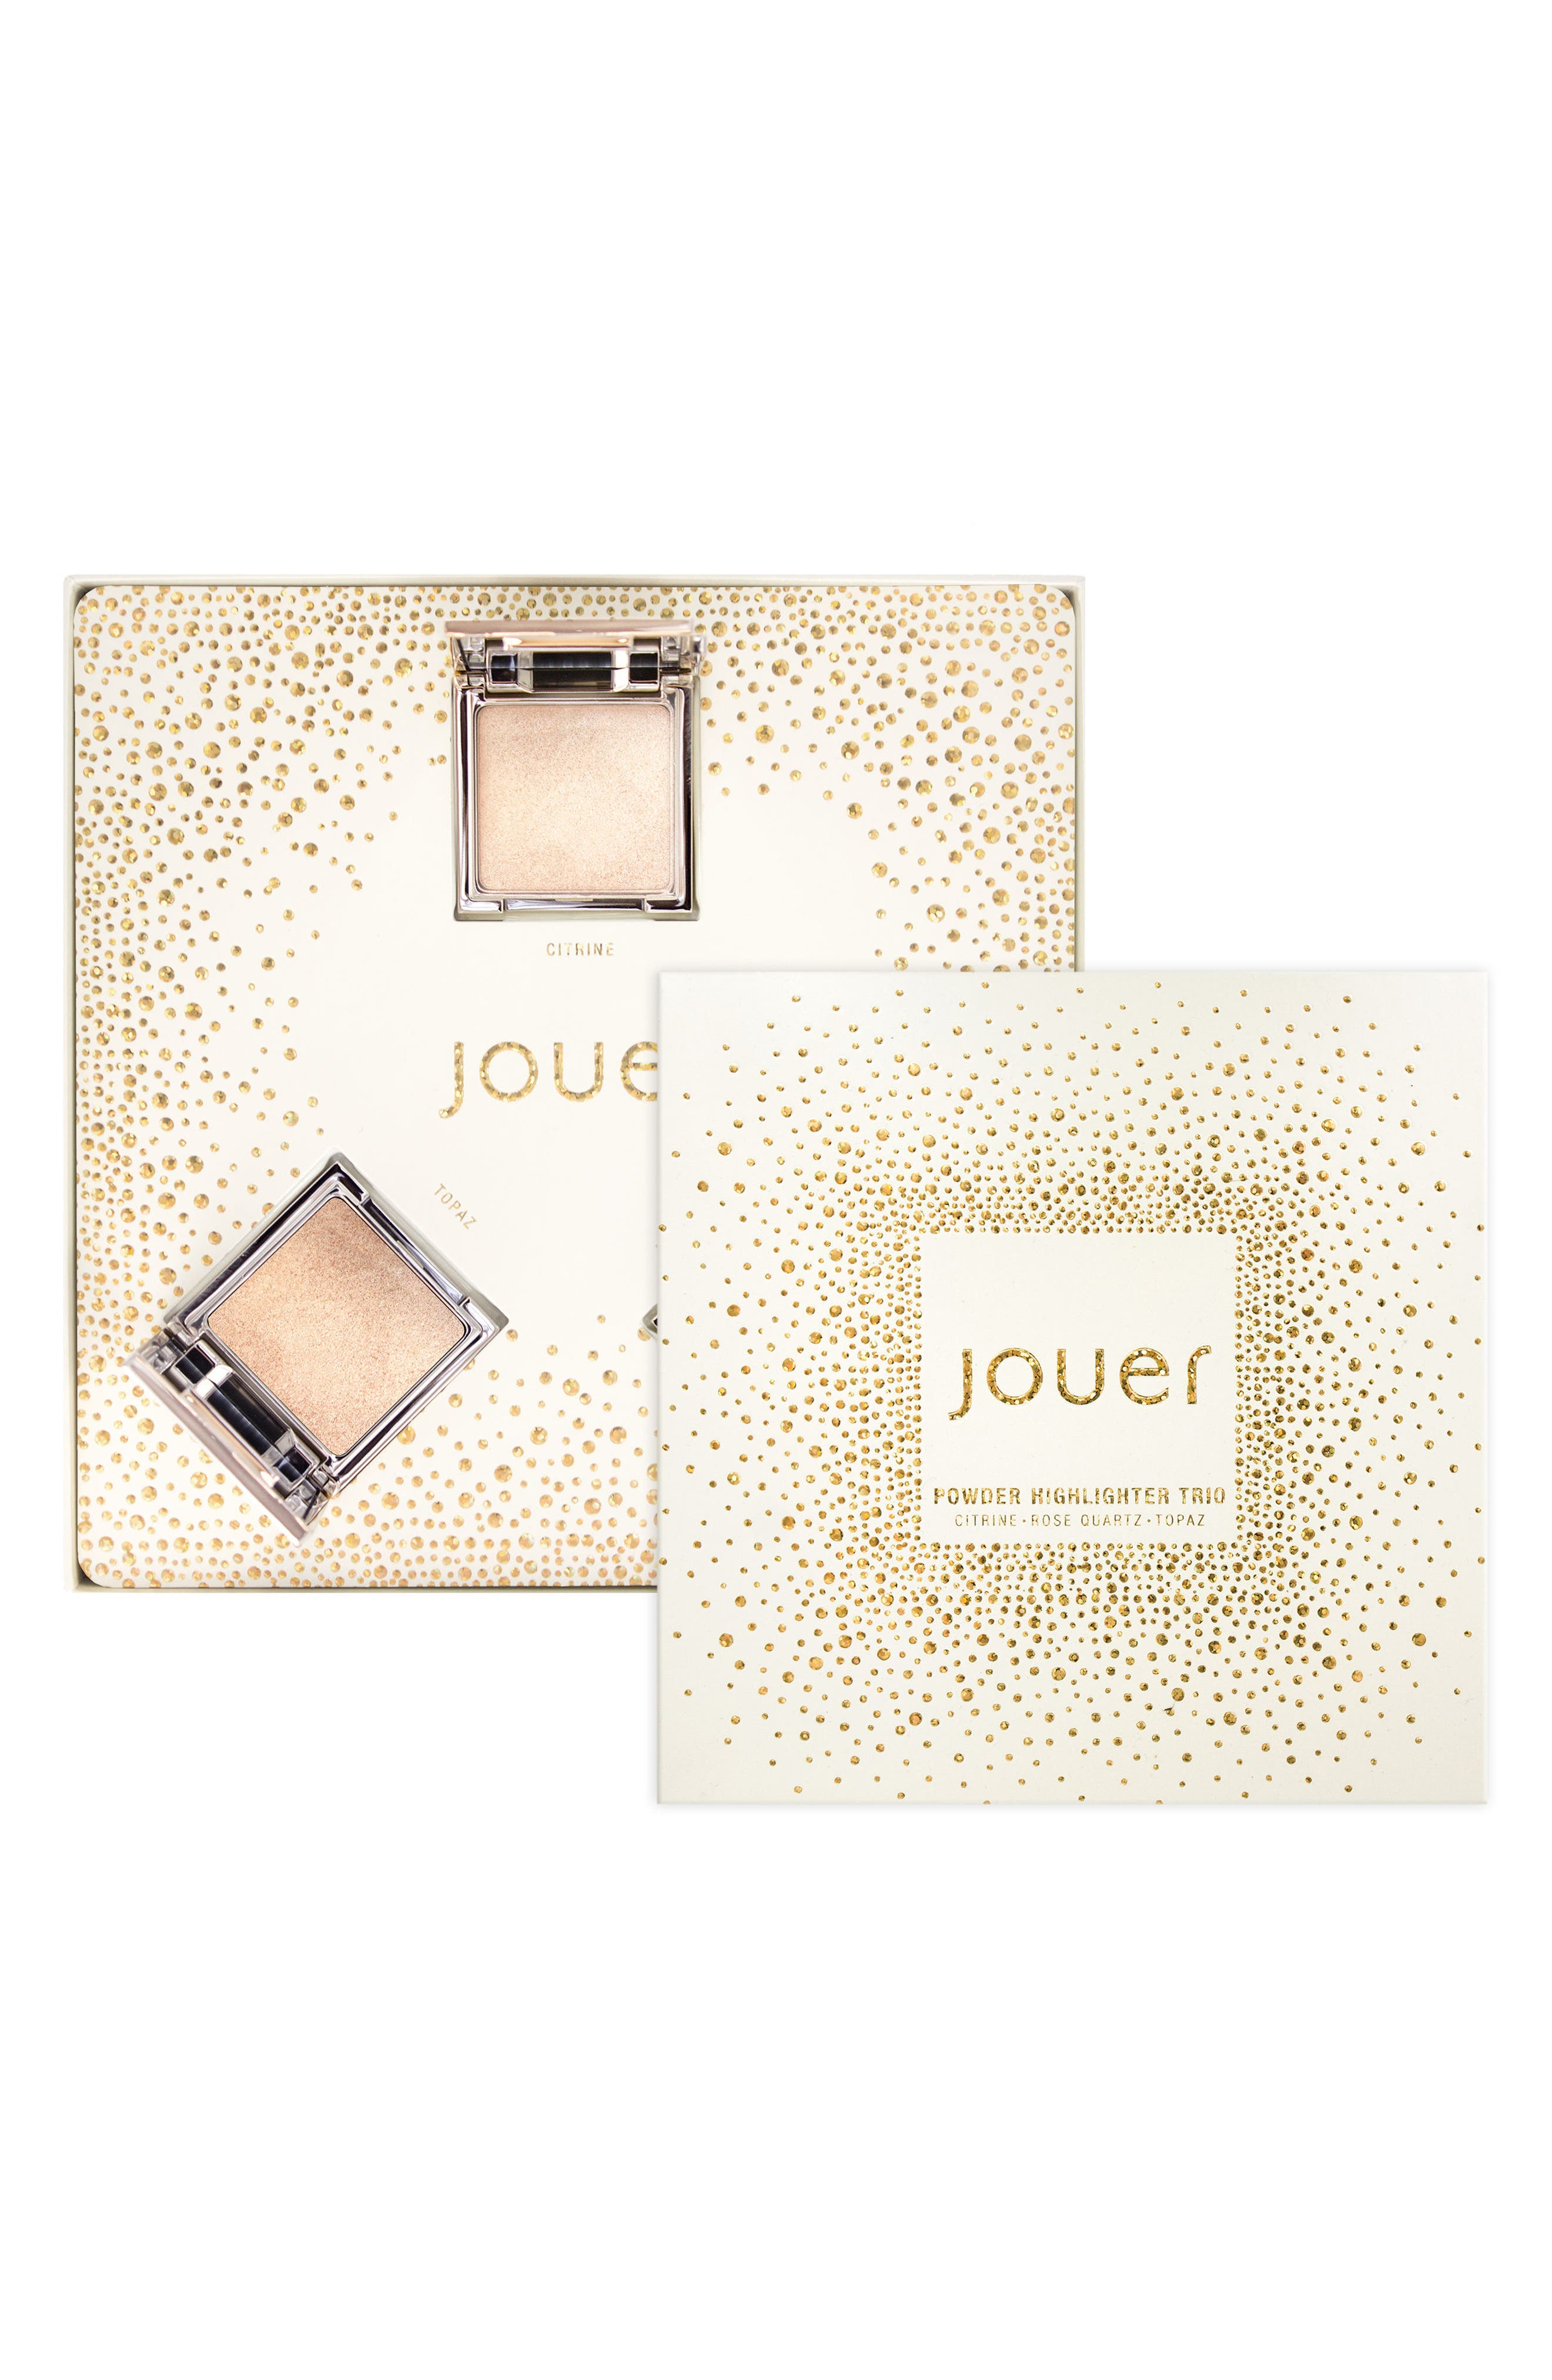 Main Image - Jouer Skinny Dip, Peach & Rose Gold Powder Highlighter Trio ($60 Value)